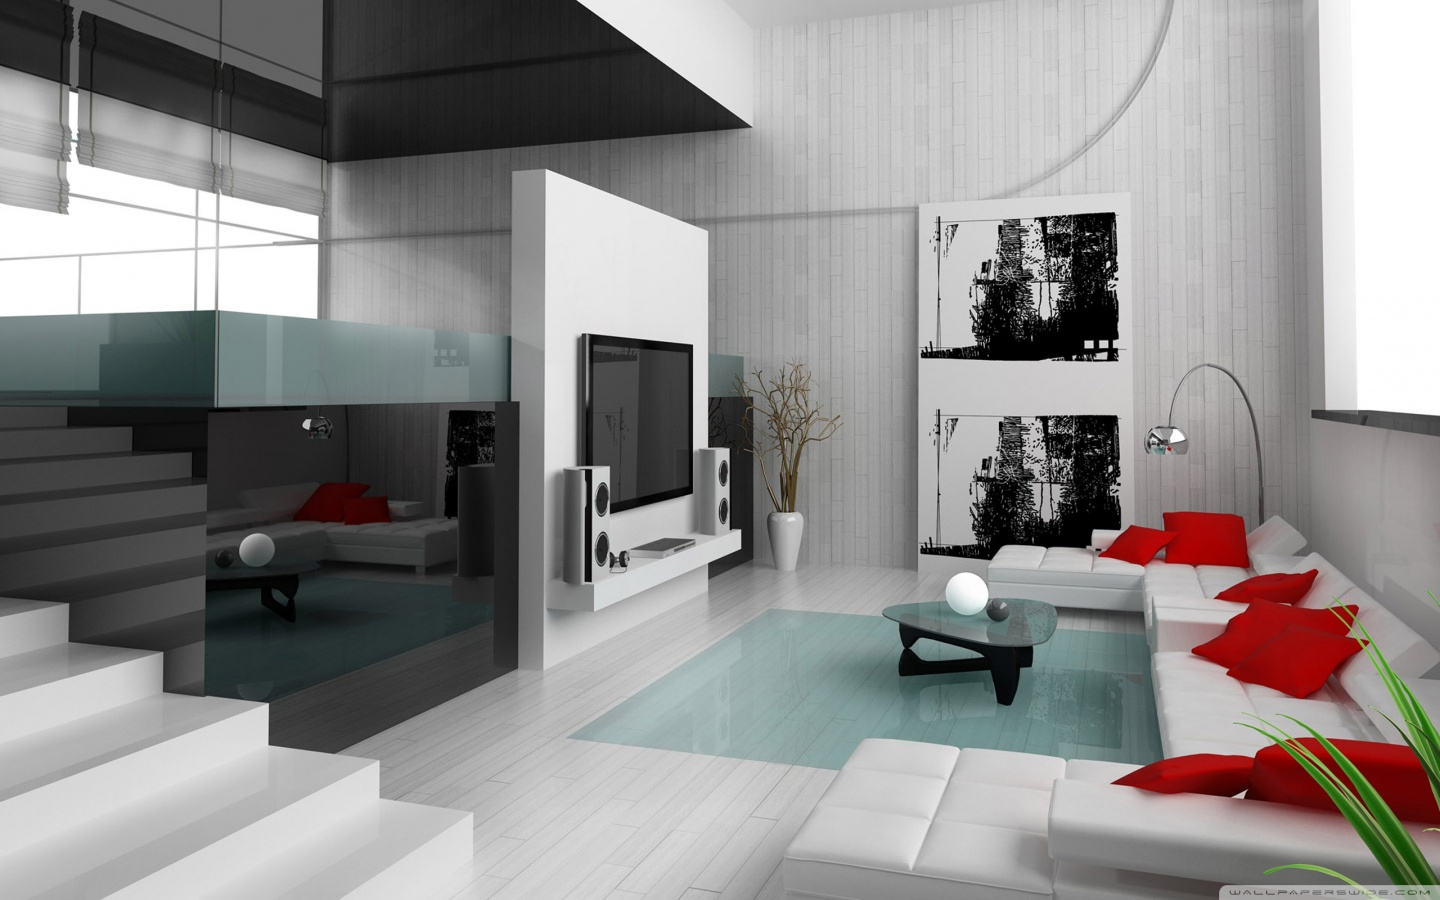 Minimalist interior design imagination art architecture for Modern home accents accessories